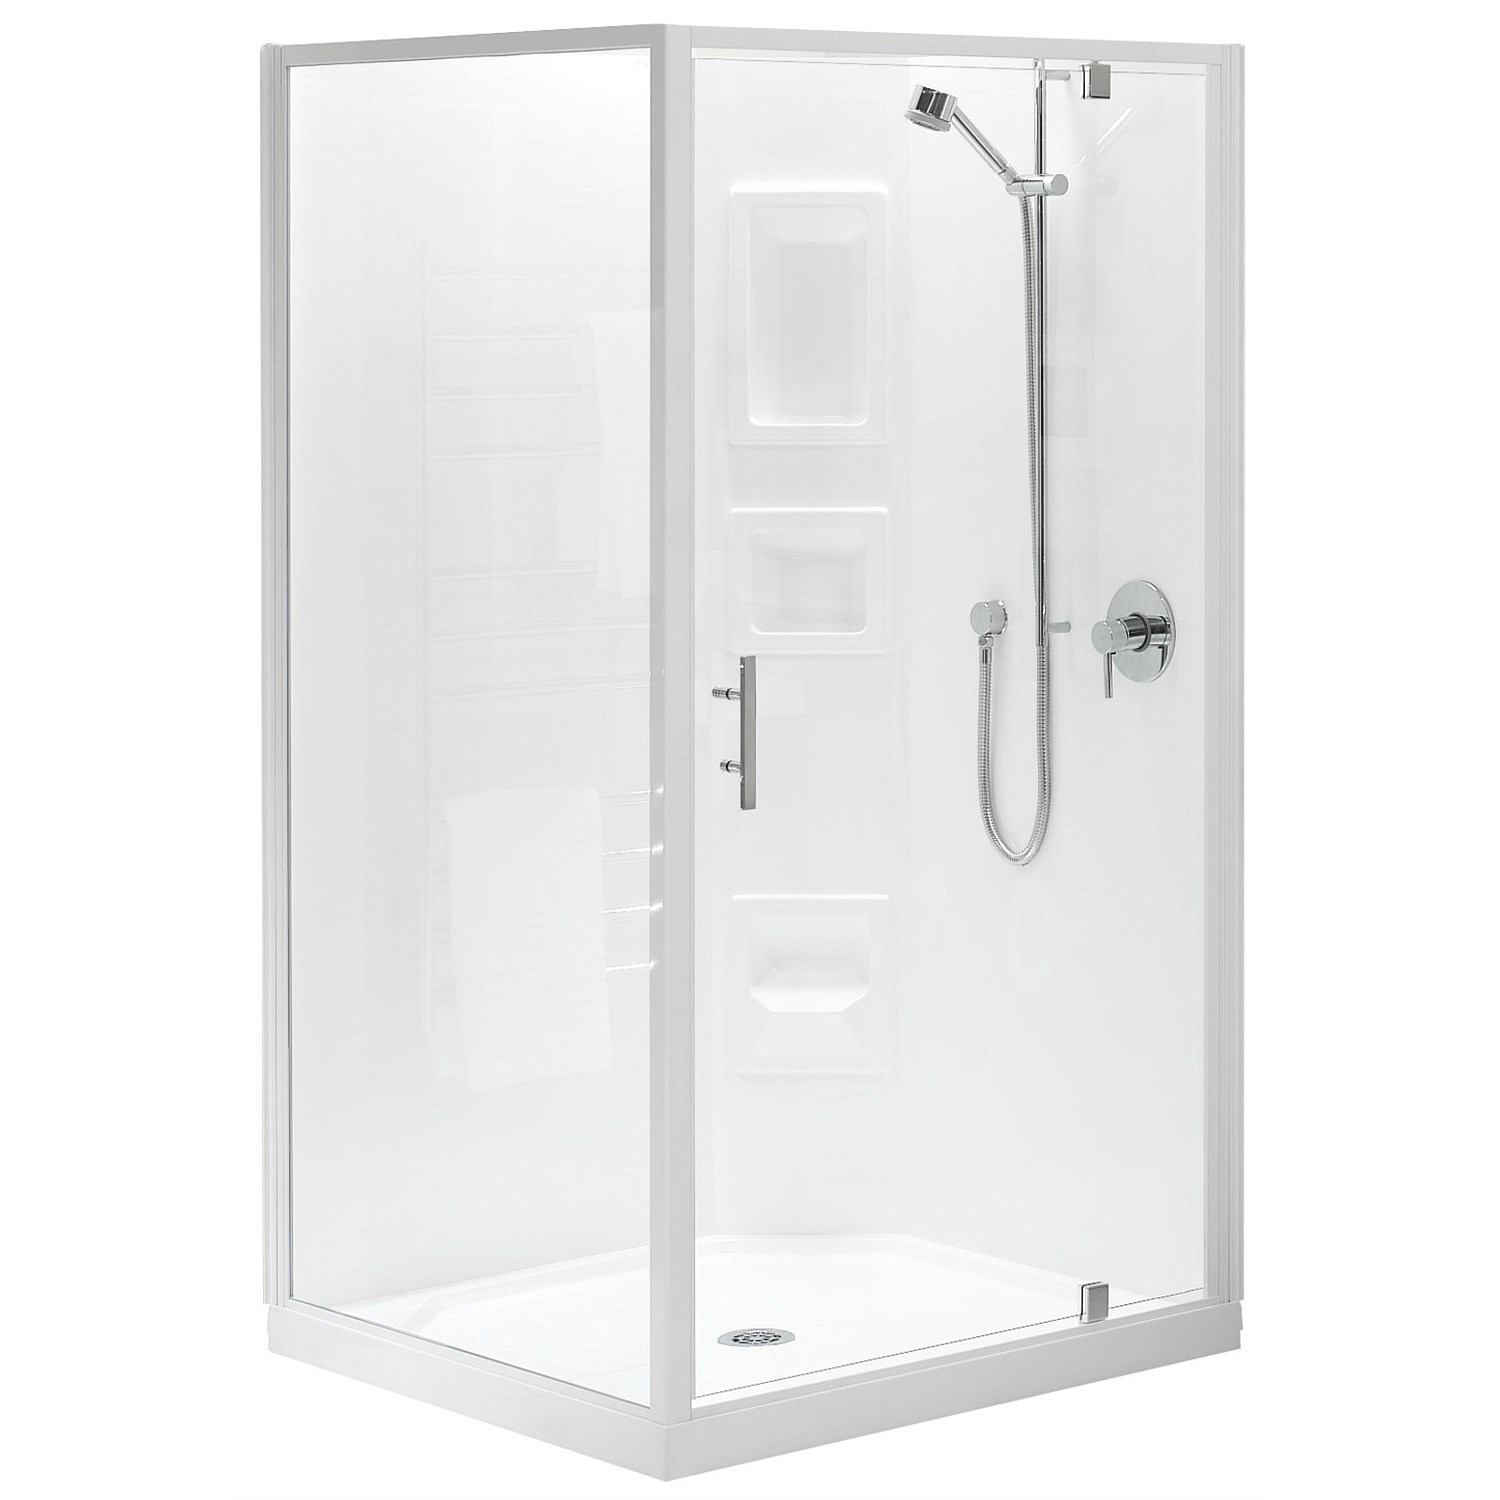 Showers - Clearlite Induro 1000mm 2 Sided Square Shower Enclosure